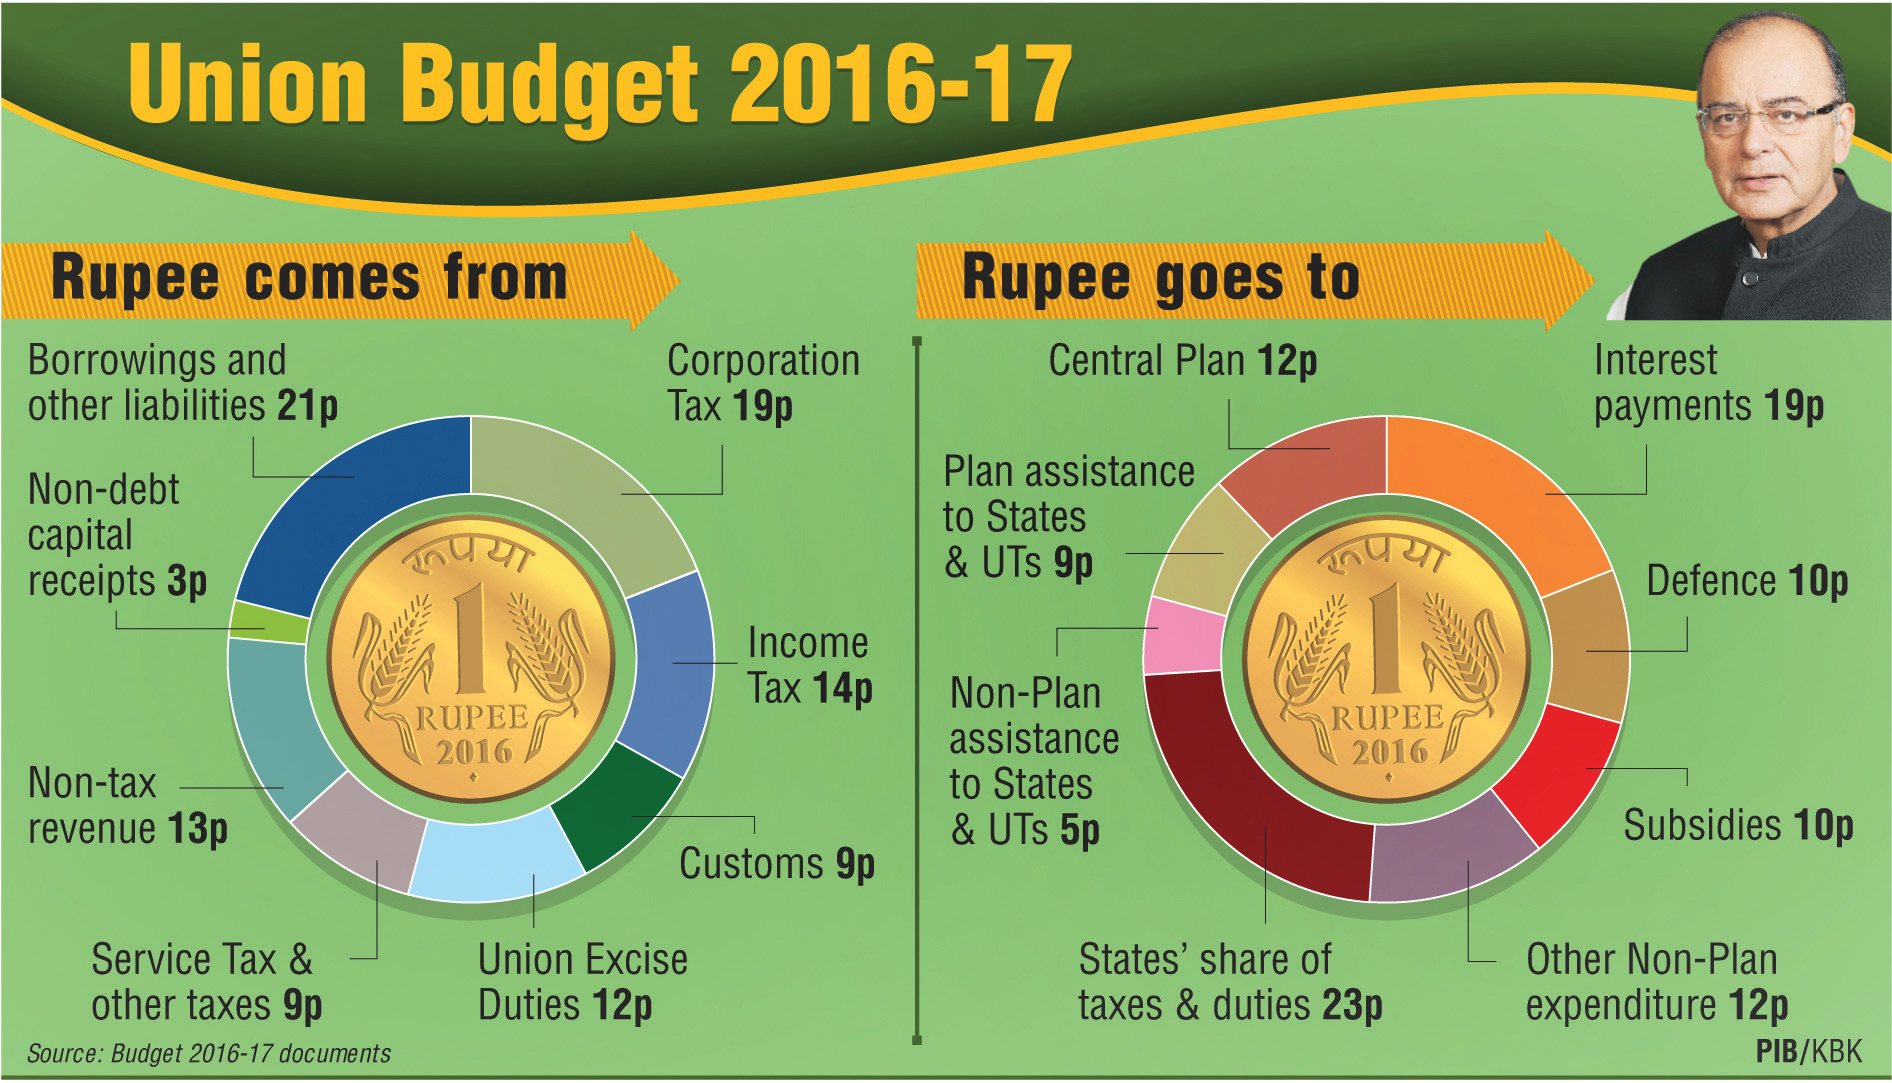 Union Budget 2016-17 Fine Balance between Growth & Fiscal Prudence